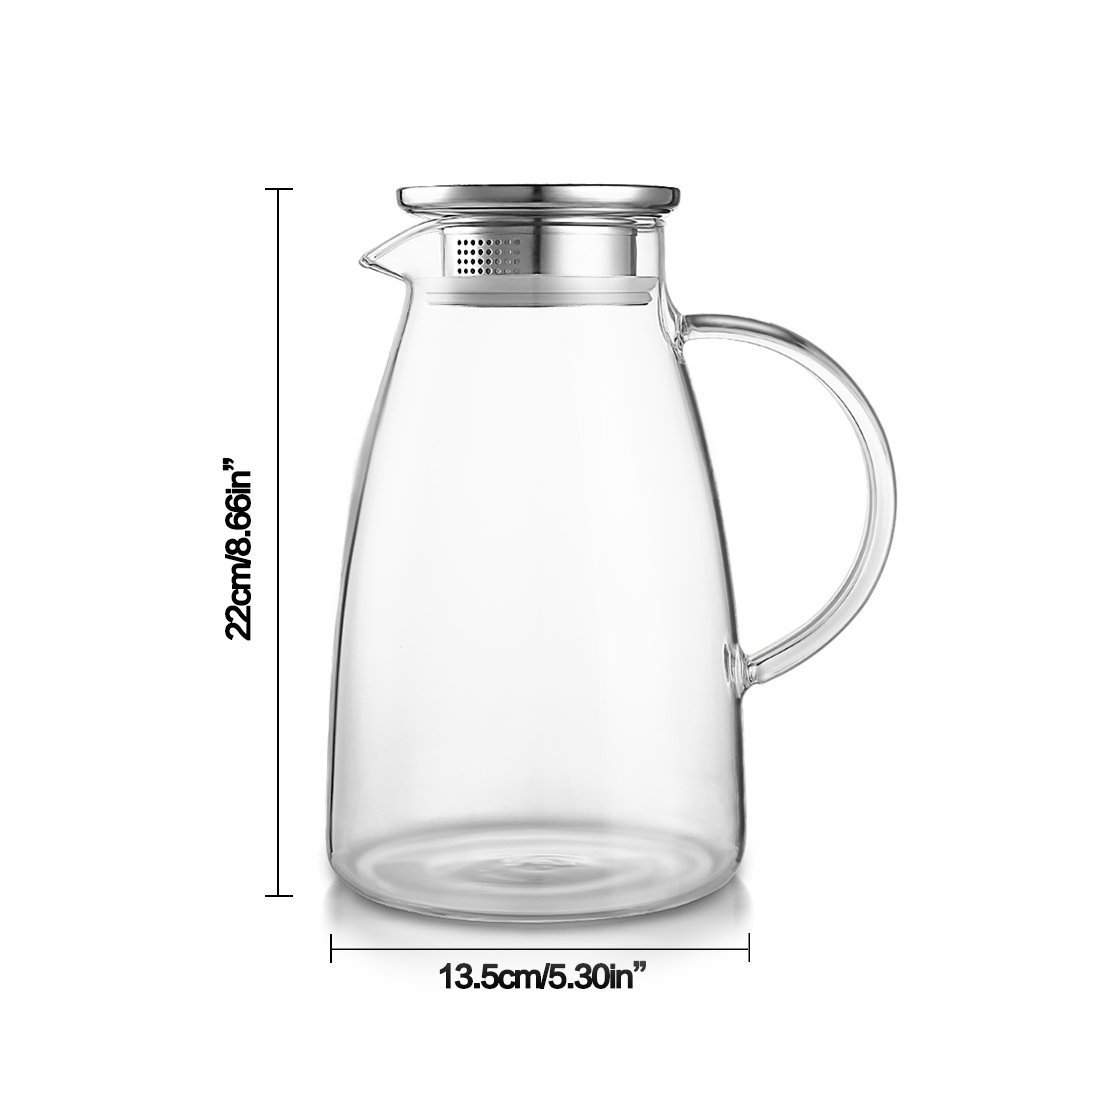 JIAQI 68 Ounces Glass Pitcher with Stainless Steel Lid, Hot/Cold Water Jug, Juice and Iced Tea Beverage Carafe by JIAQI (Image #2)